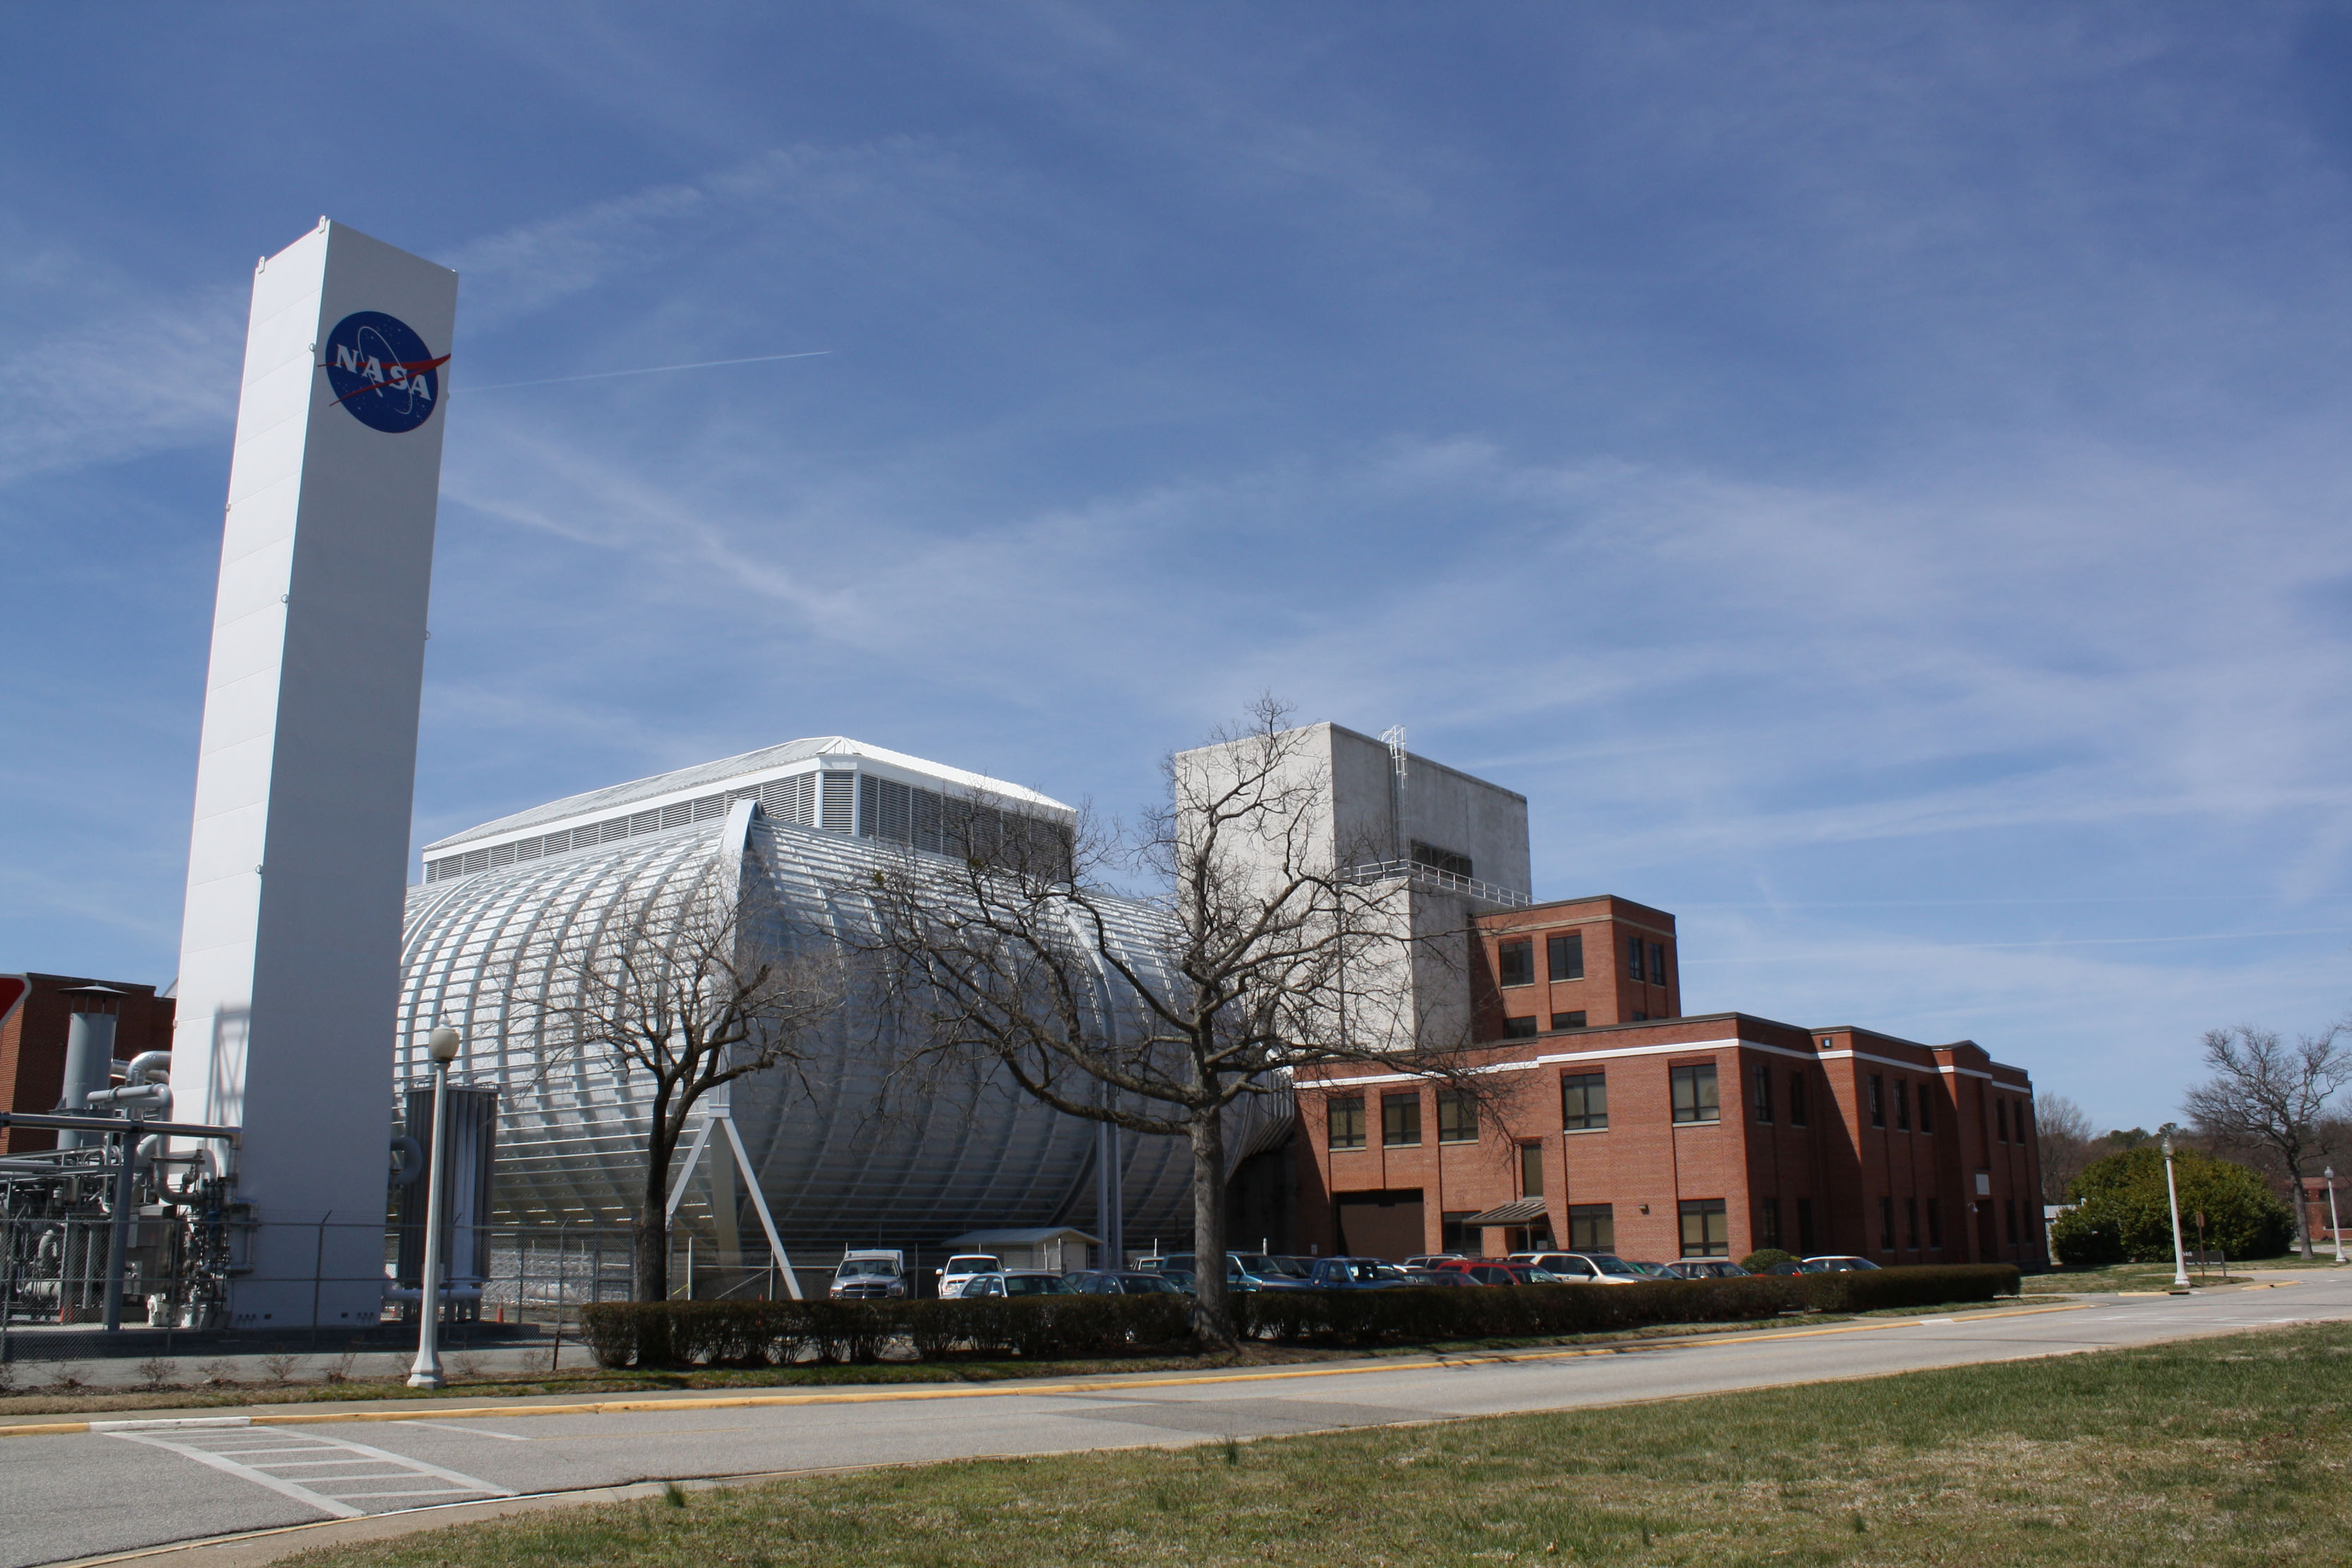 NASA Langley Research Center Historic District